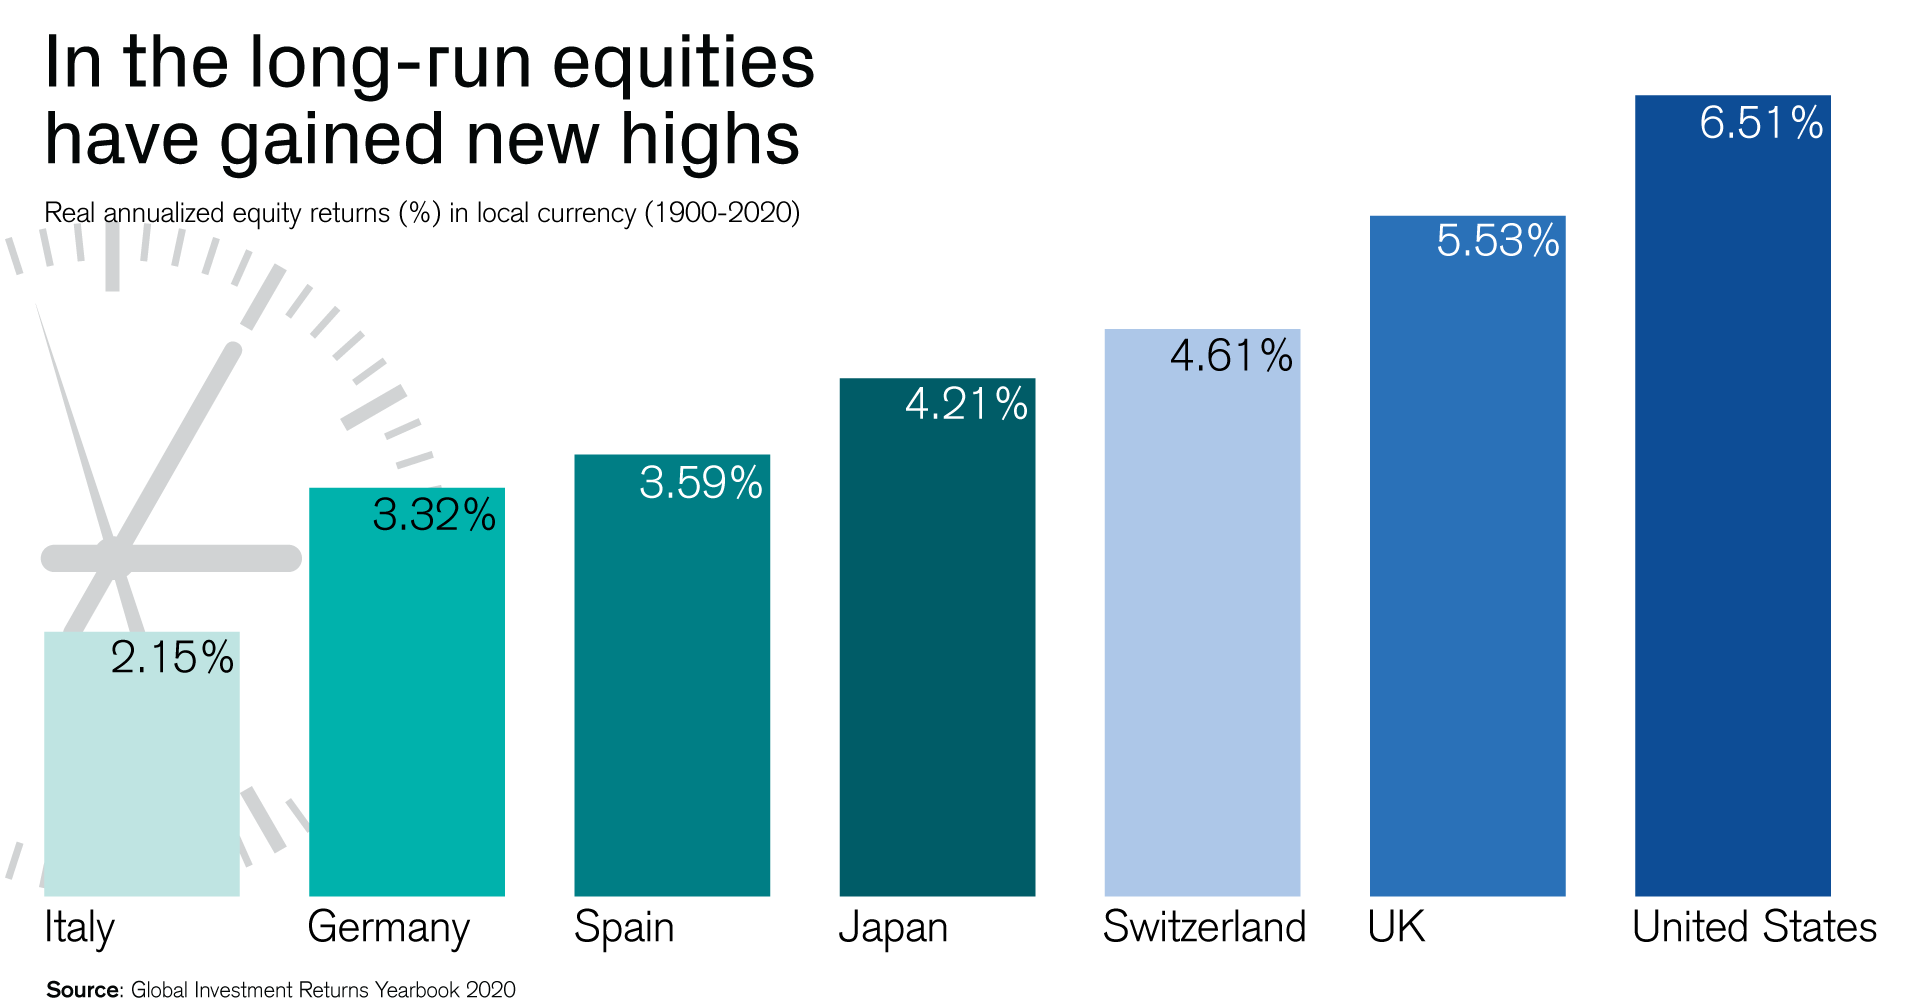 In the long-run equities have gained new hights